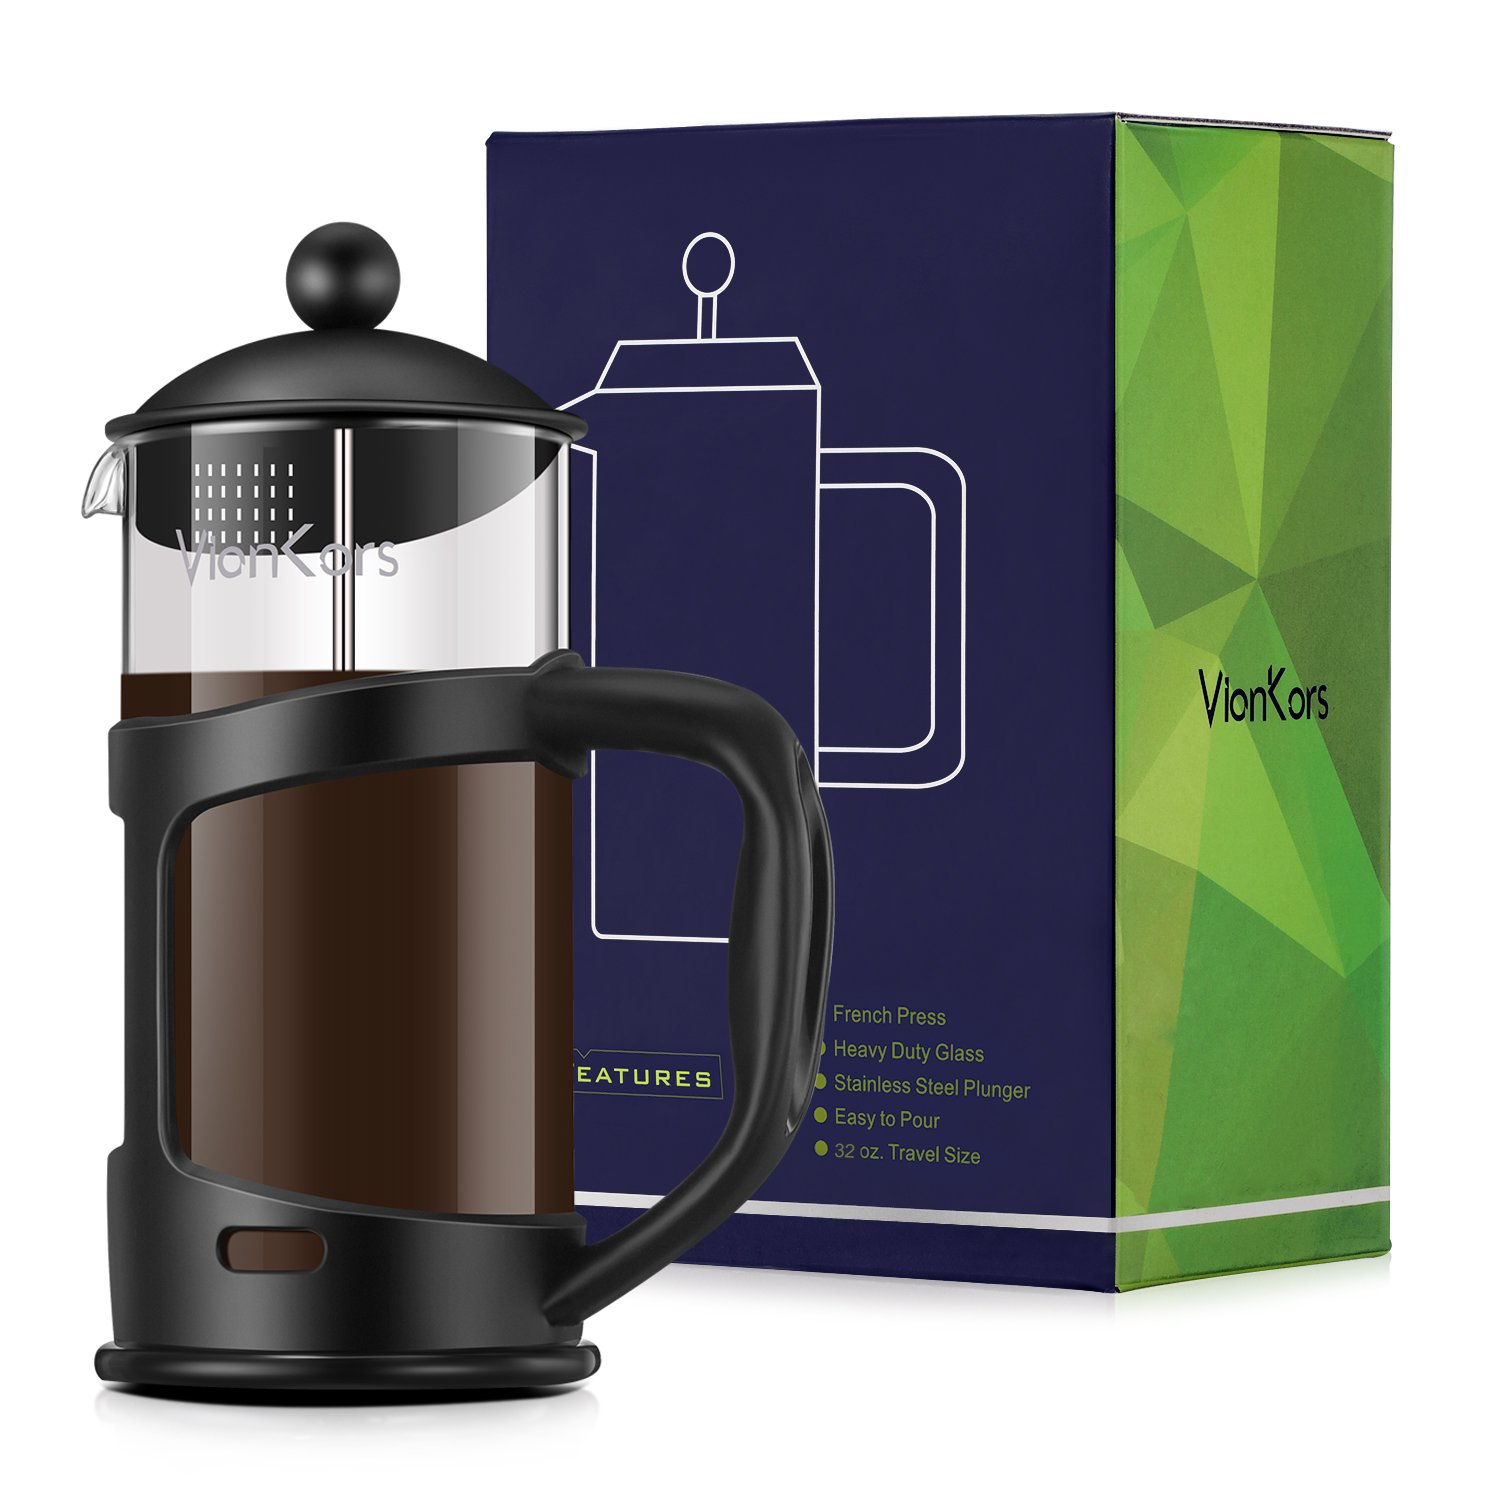 Cafetière French Press Coffee Maker - VIANKORS Coffee & Tea maker Family size (34 oz, 1000ml) Classic Collection Heat Resistant Borosilicate Glass Bonus Stainless Steel Screen Easy to clean